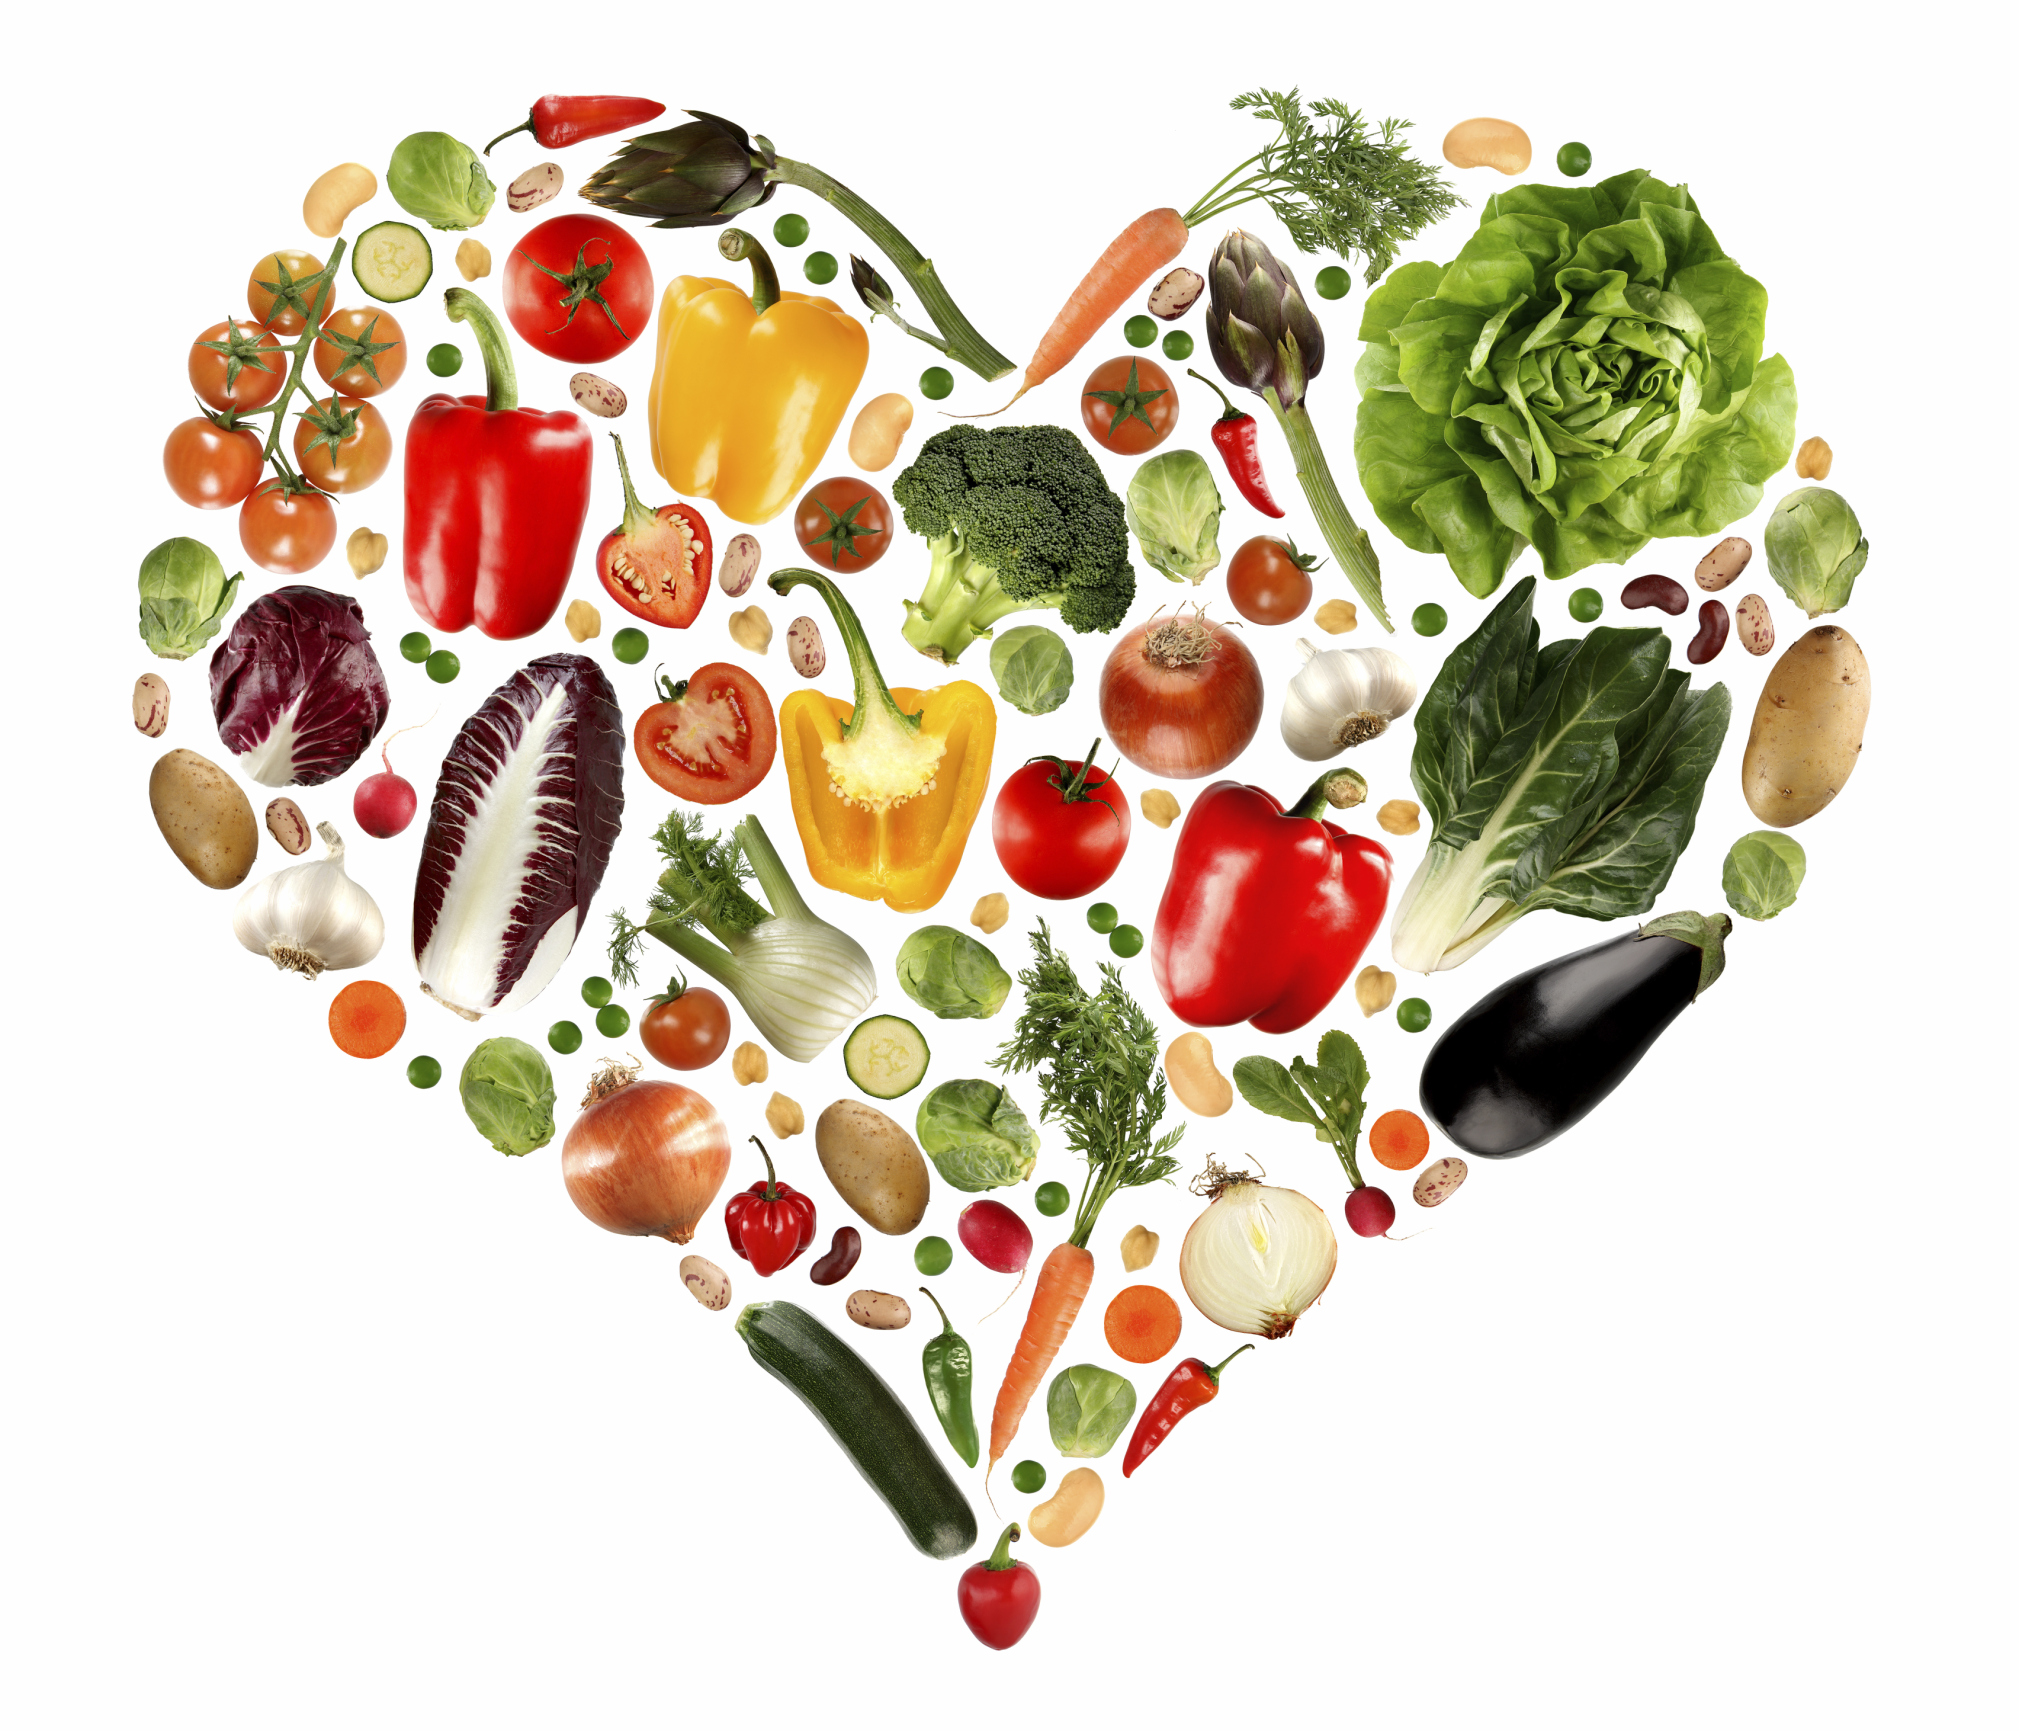 Healthy eating - what would you need? | LIFE unleashed!